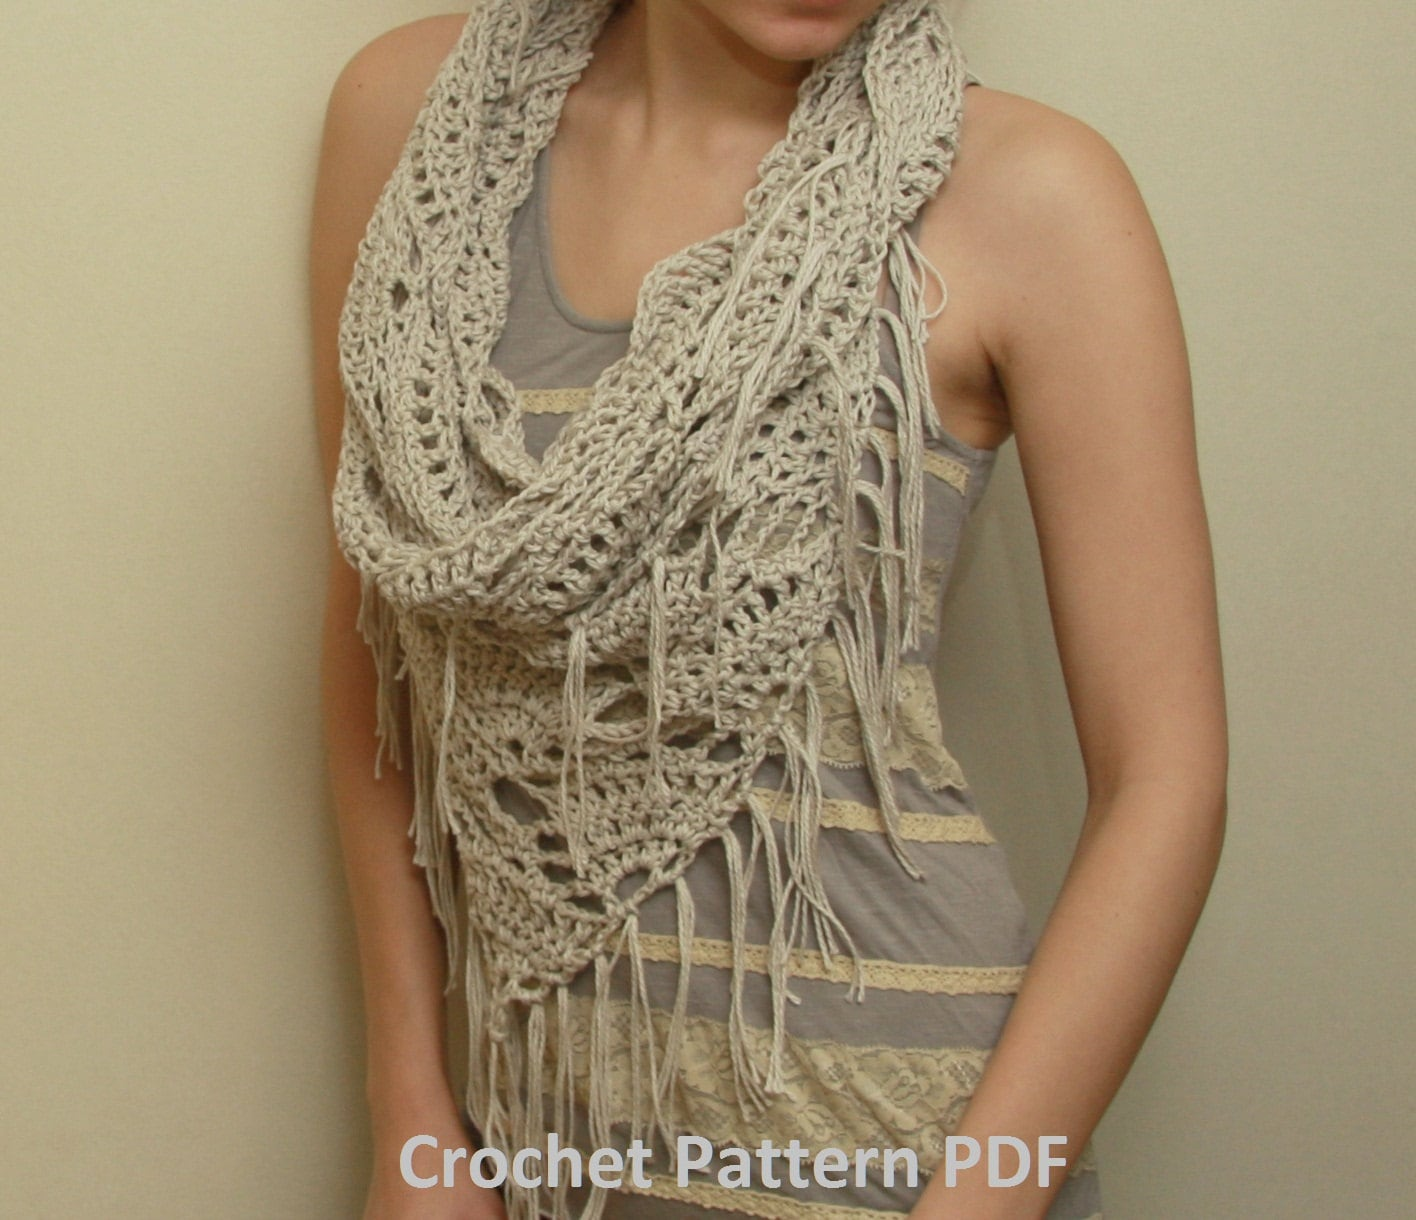 Crochet Cowl Pattern Pdf Triangle Cowl Electronic Pdf File